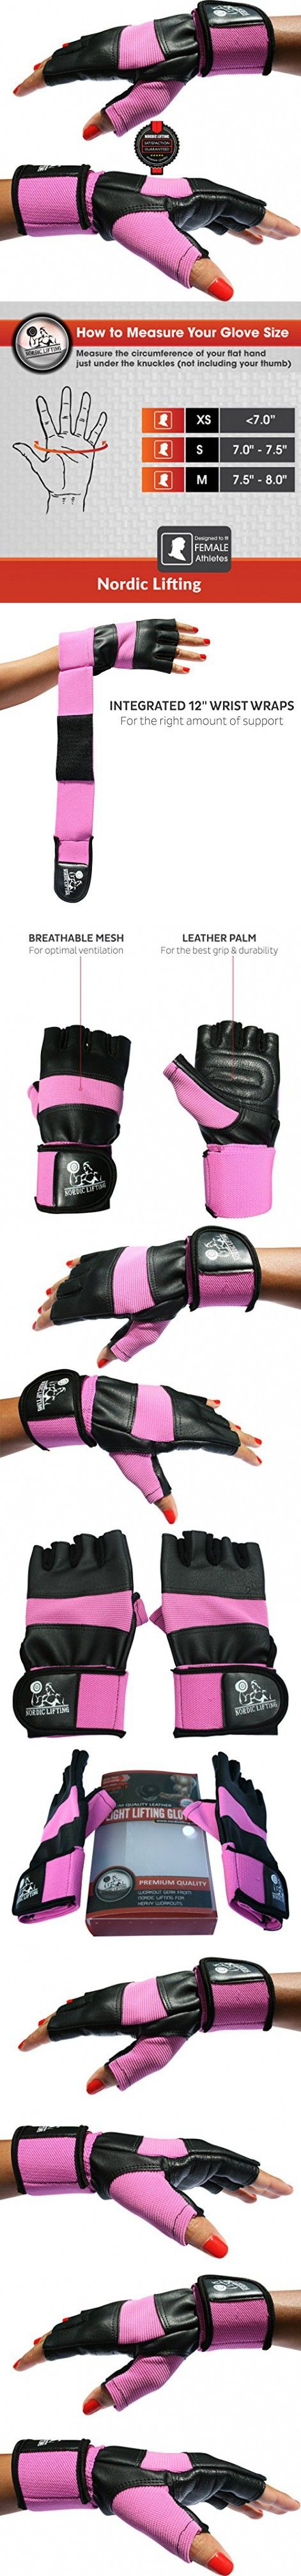 "Weight Lifting Gloves With 12"" Wrist Support For Gym Workout, CrossFit, Weightlifting, Fitness & Cross Training - The Best For Men & Women - by Nordic Liftingâ""¢ - (Pink, Small) - 1 Year Warranty"